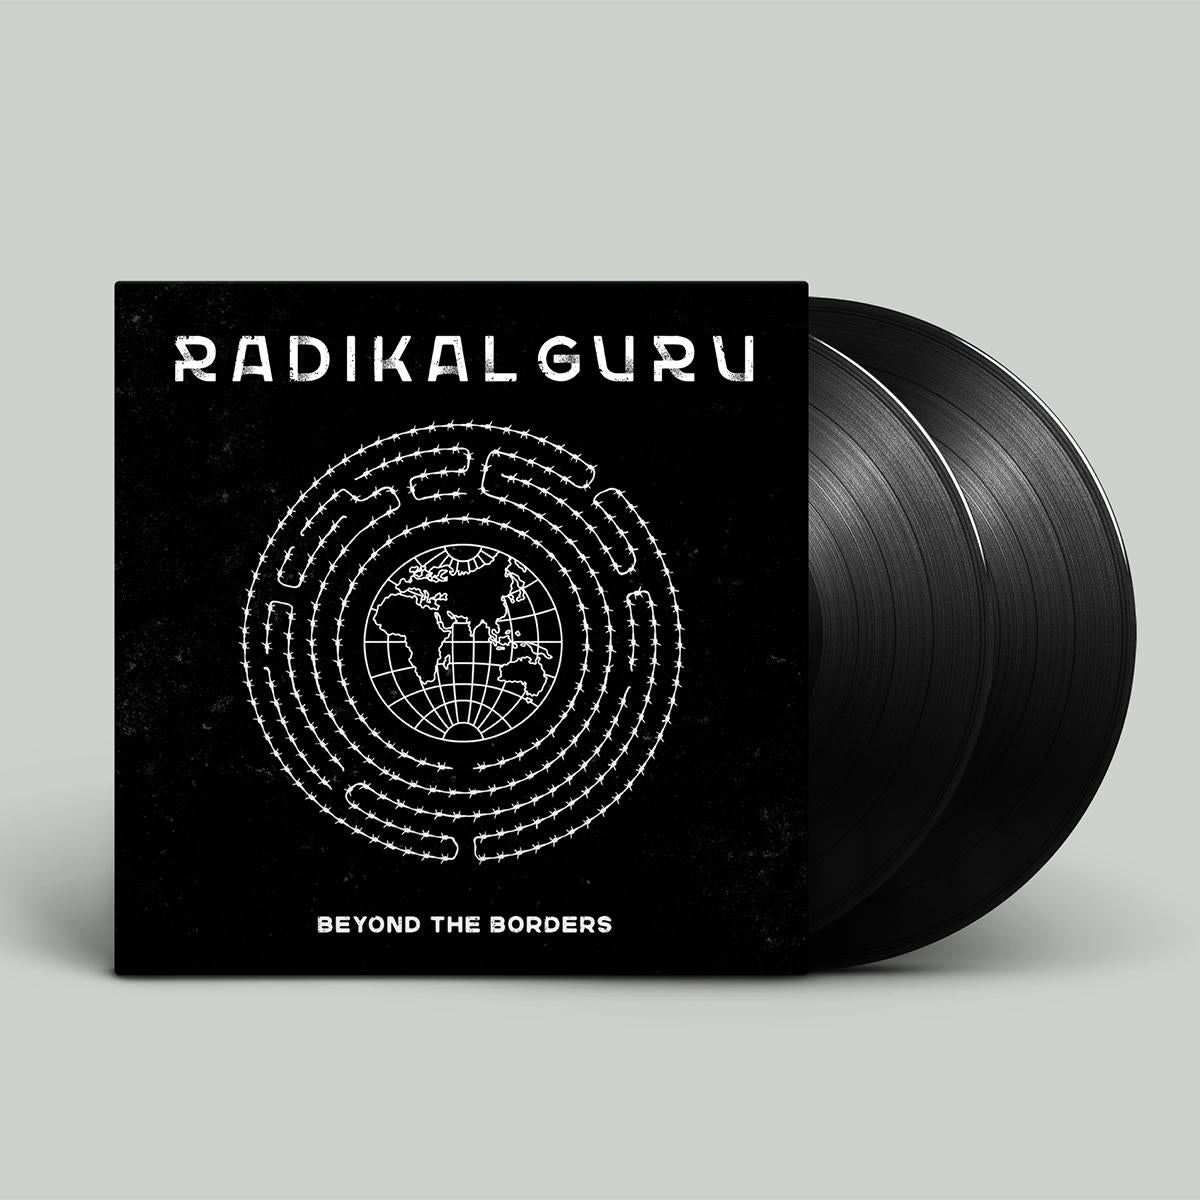 *PRE-ORDER* Radikal Guru 'Beyond The Borders LP' 2LP